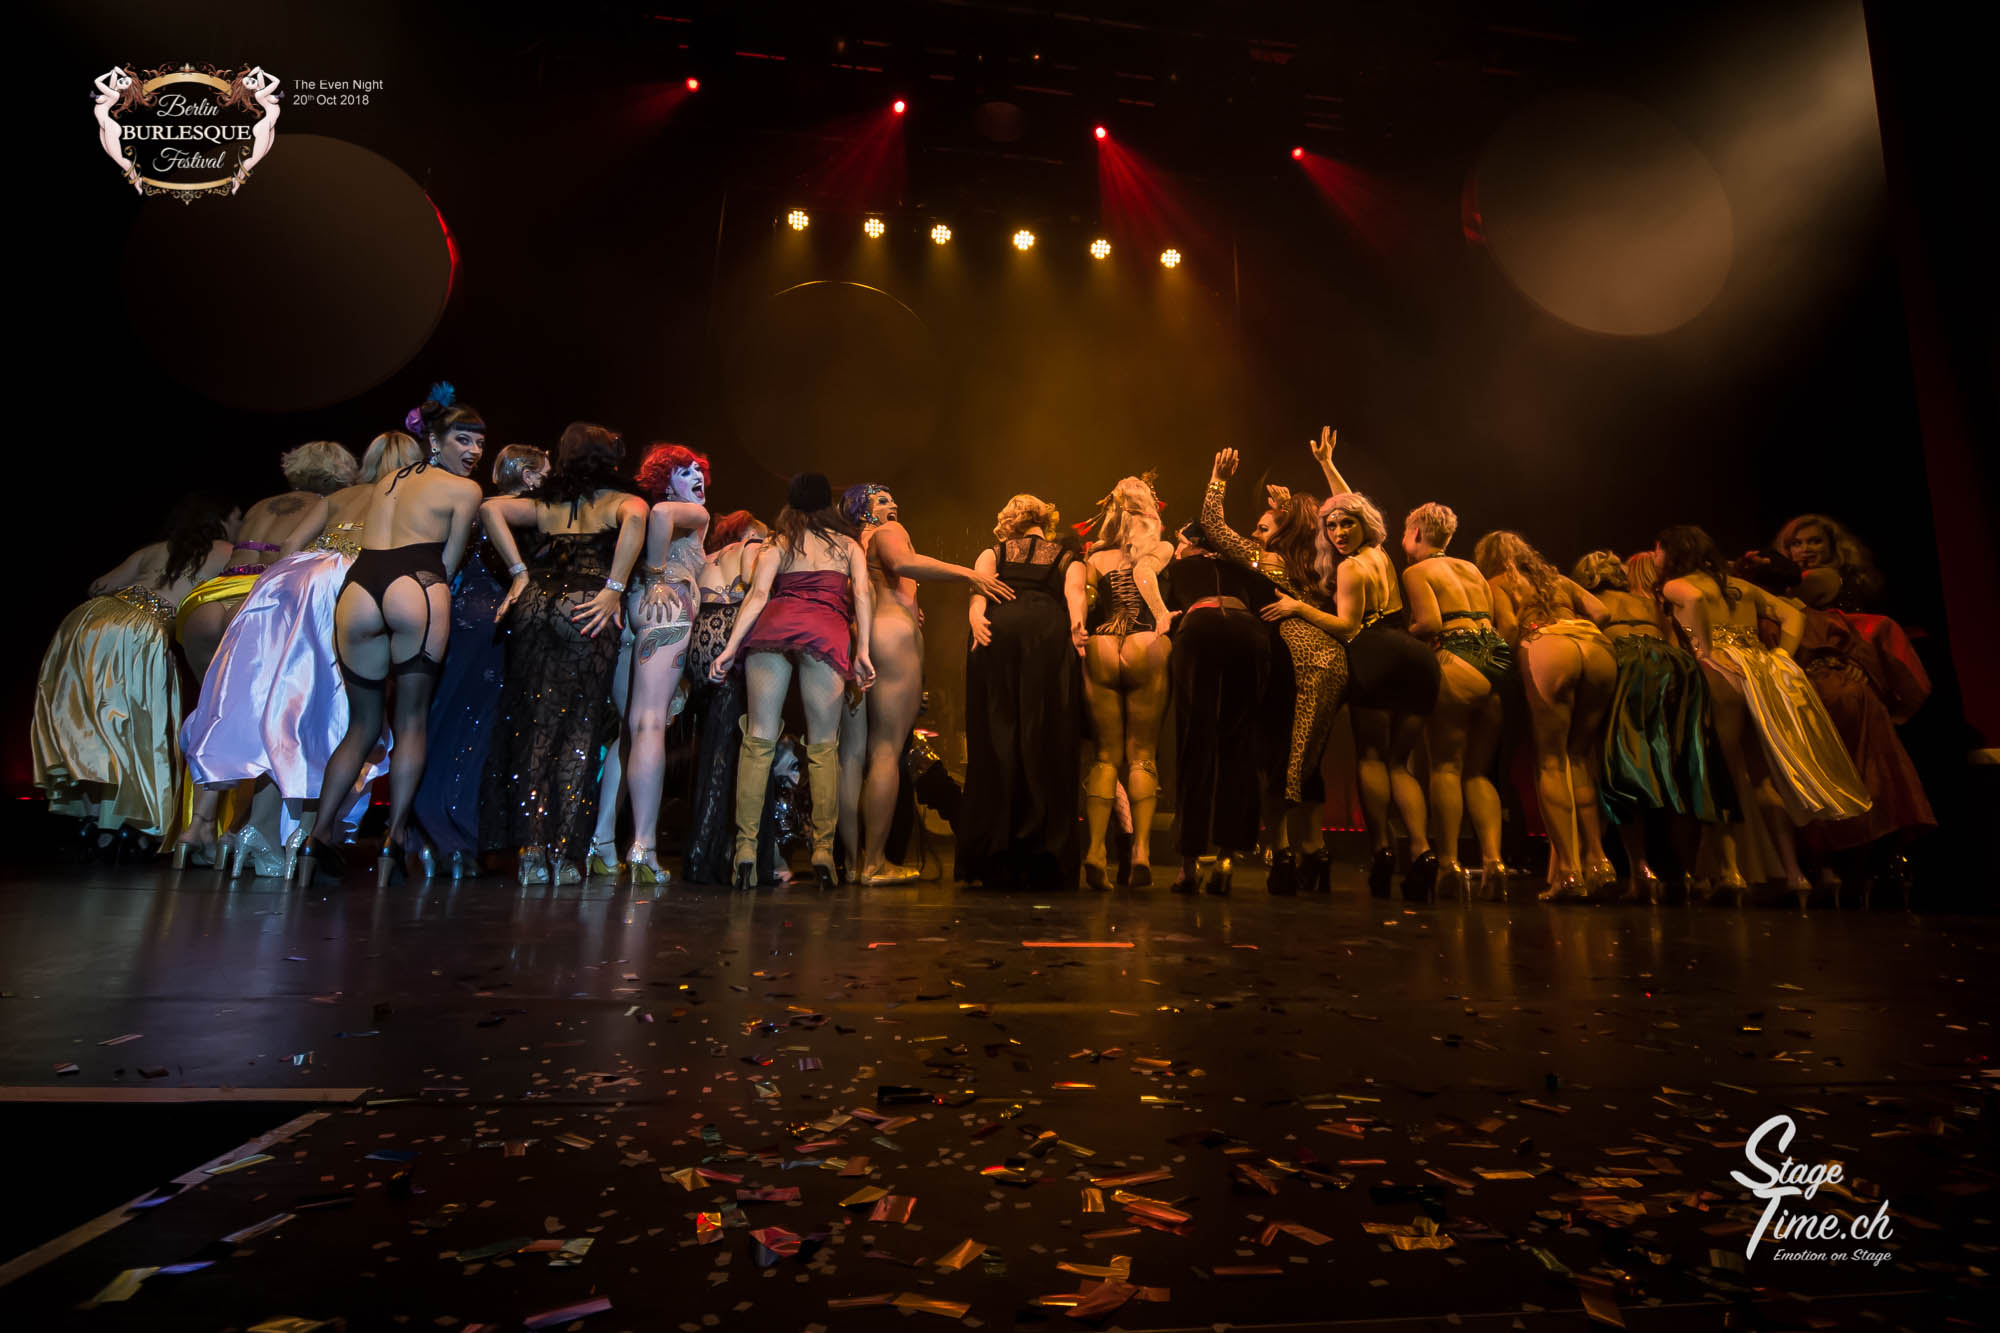 Berlin_Burlesque_Festival___The_Even_Nig